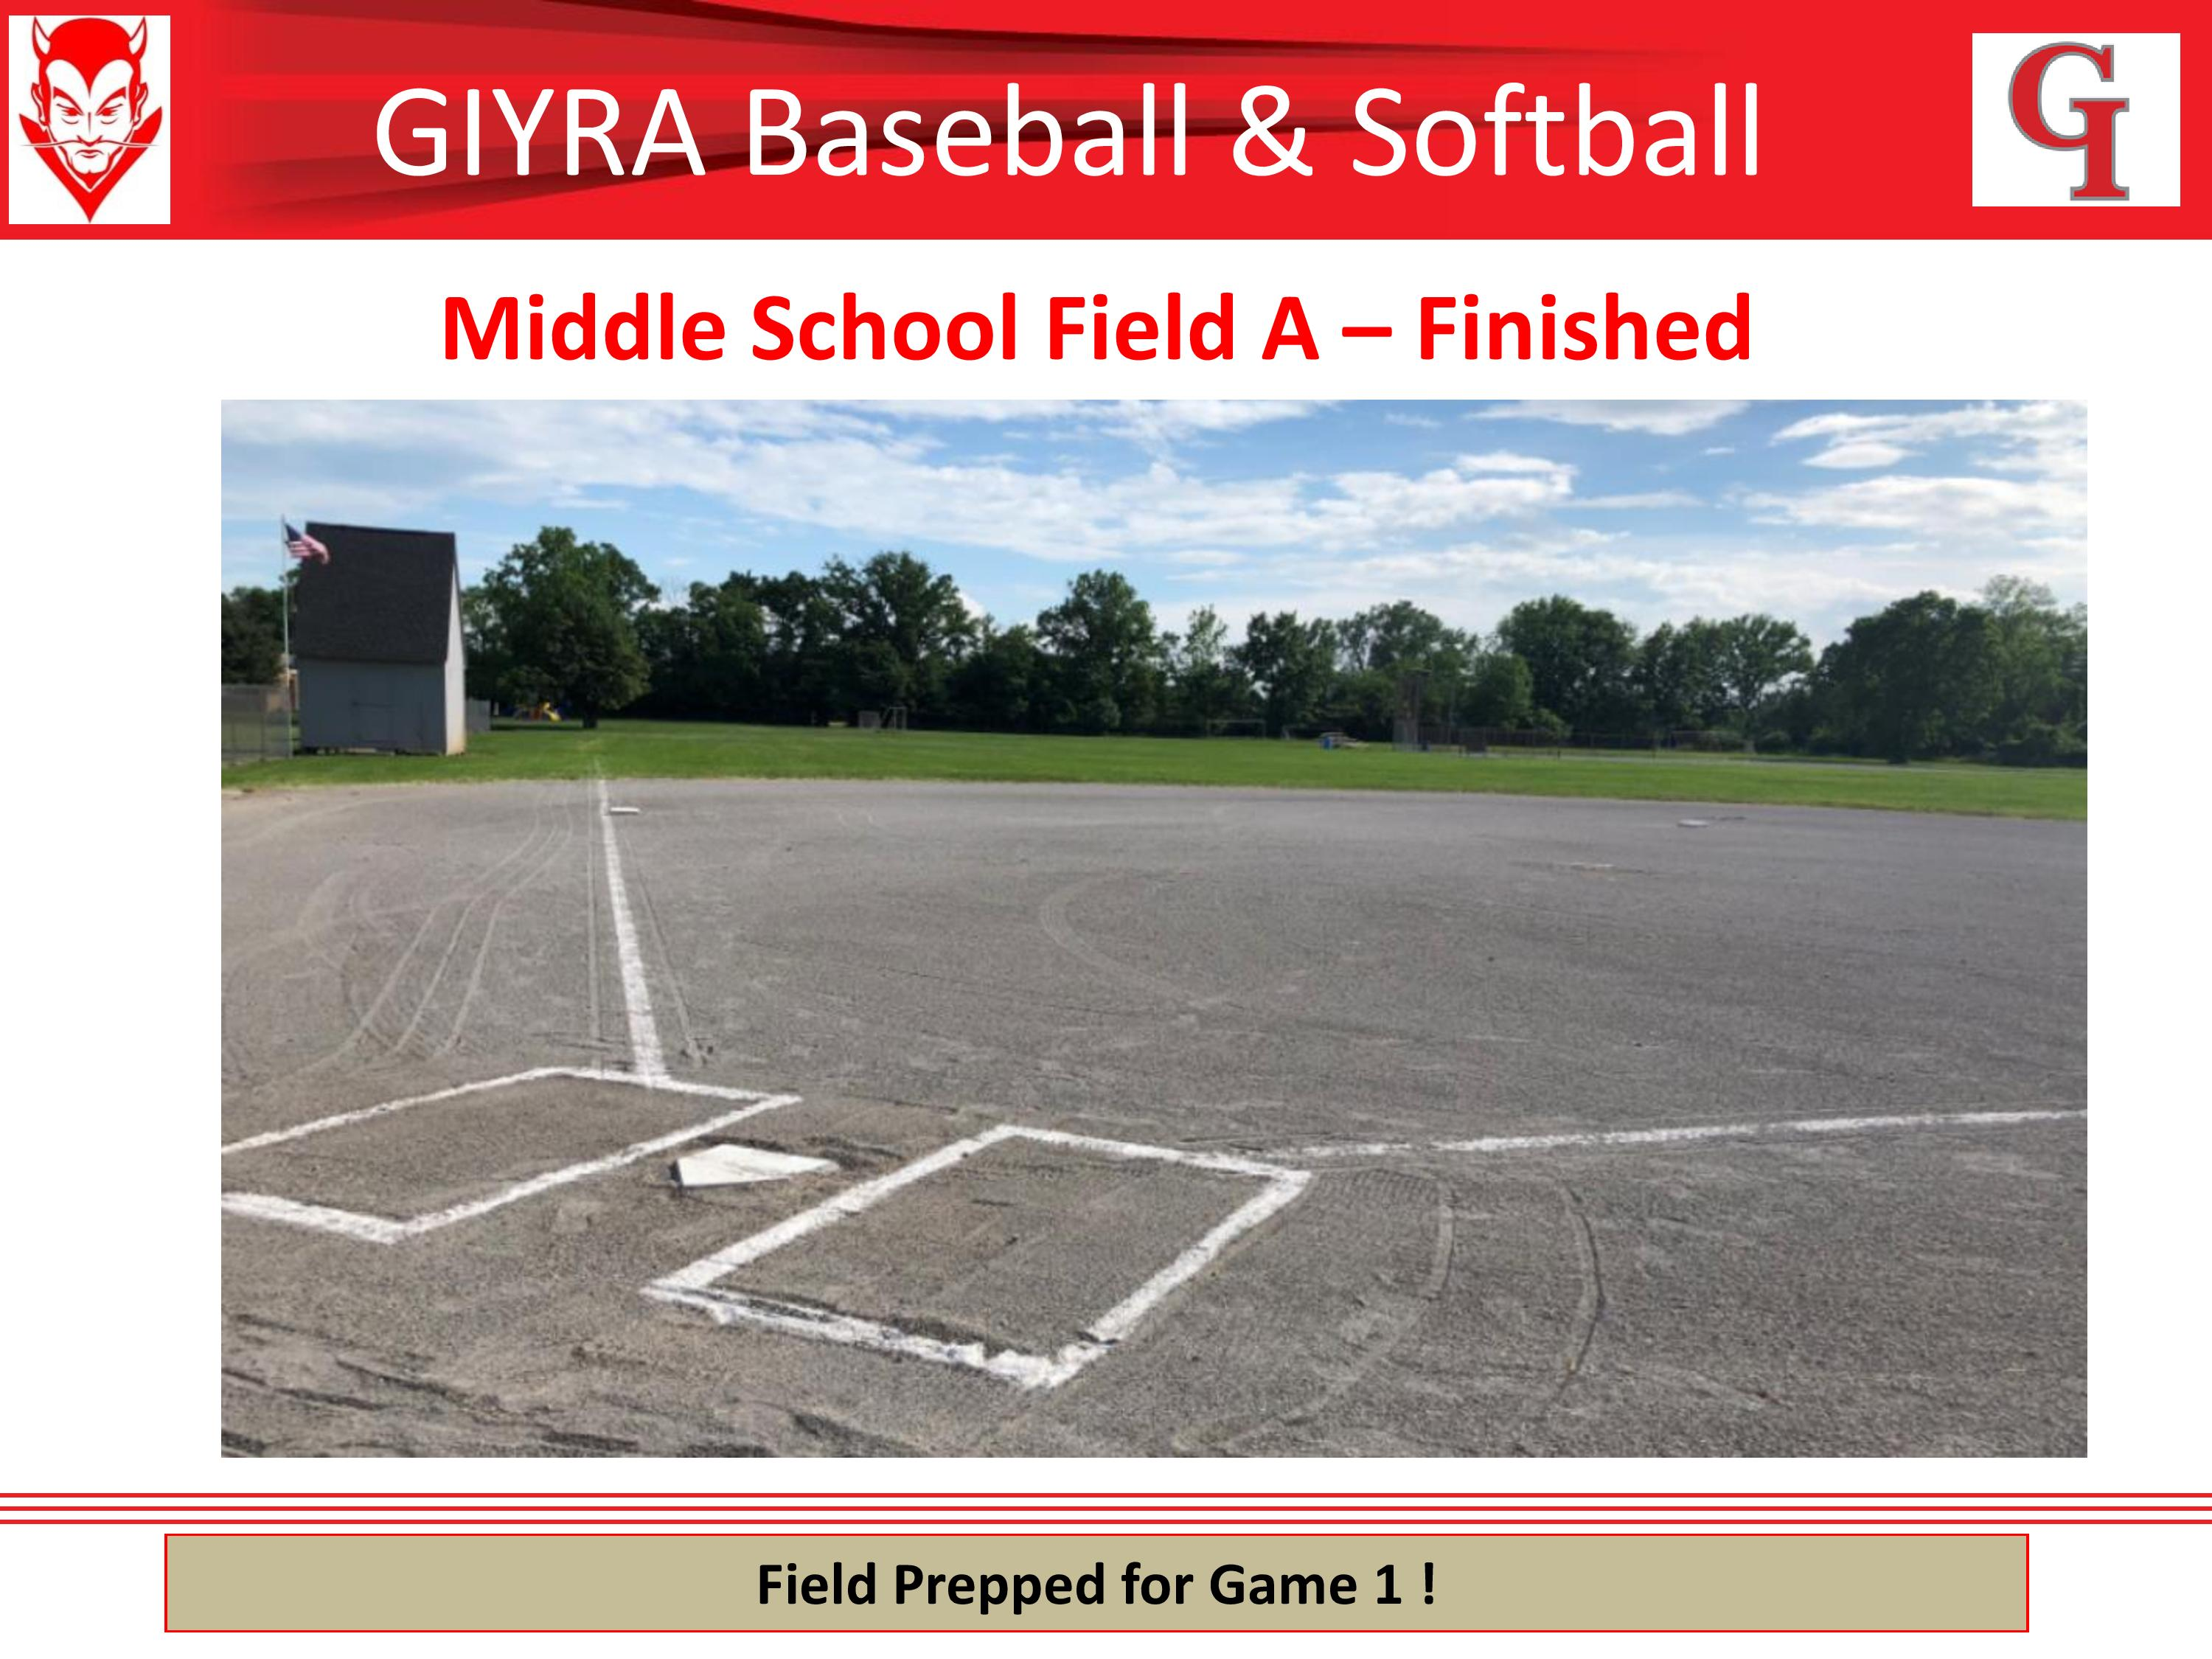 Middle School Field A After